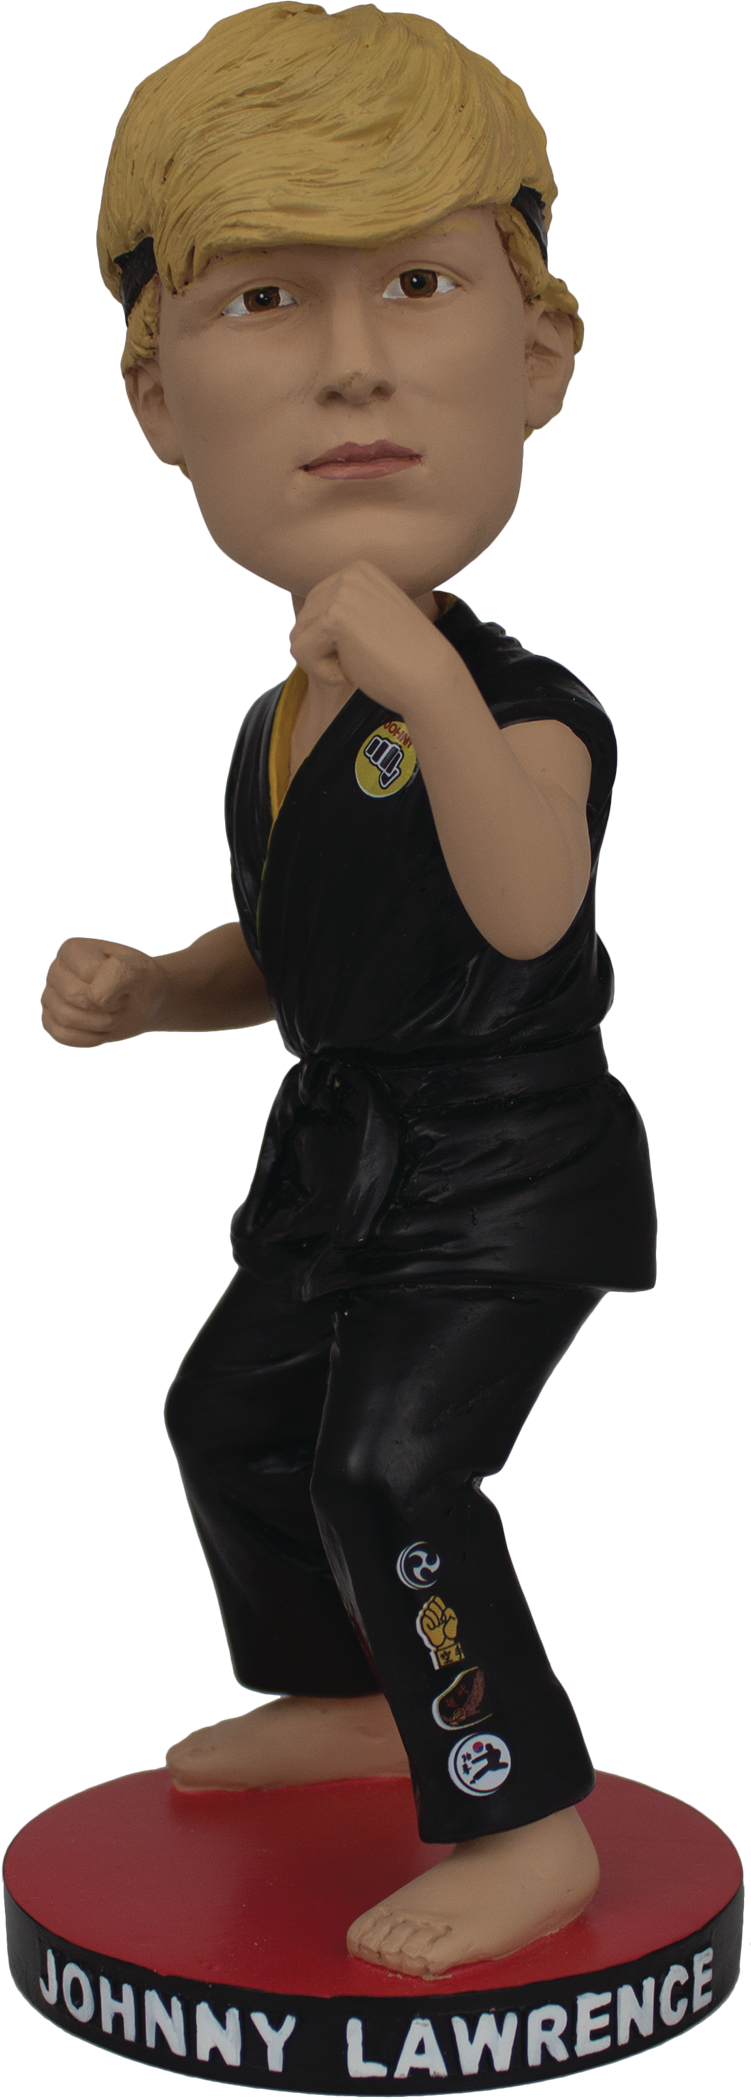 KARATE KID JOHNNY LAWRENCE PX BOBBLE HEAD (O/A)